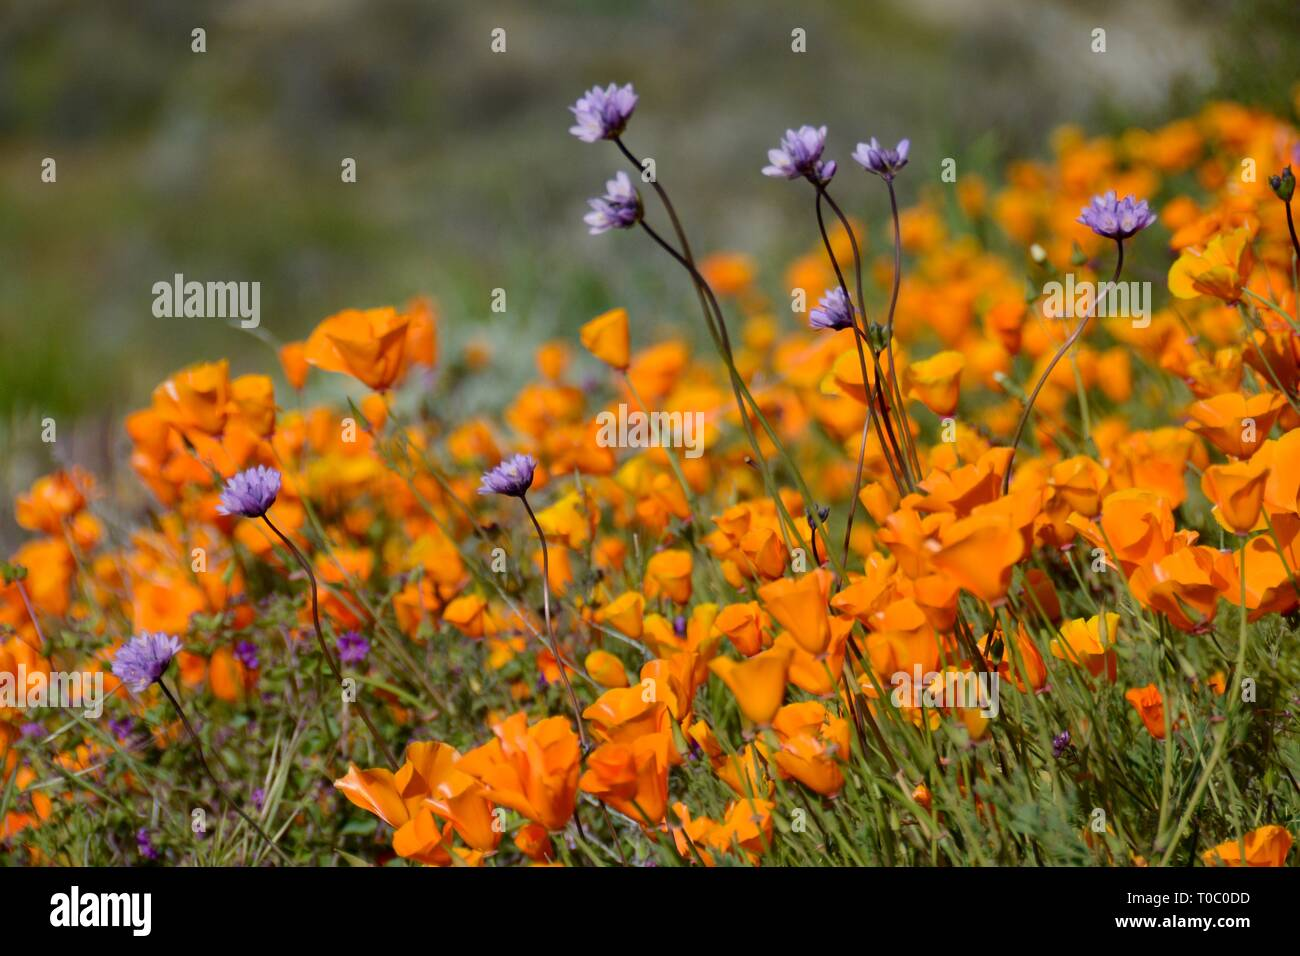 Closeup of Golden Poppies and purple wildflowers. Super Bloom 2019. Taken March 9 at Walker Canyon Poppy Fields, which are now closed for viewing. - Stock Image